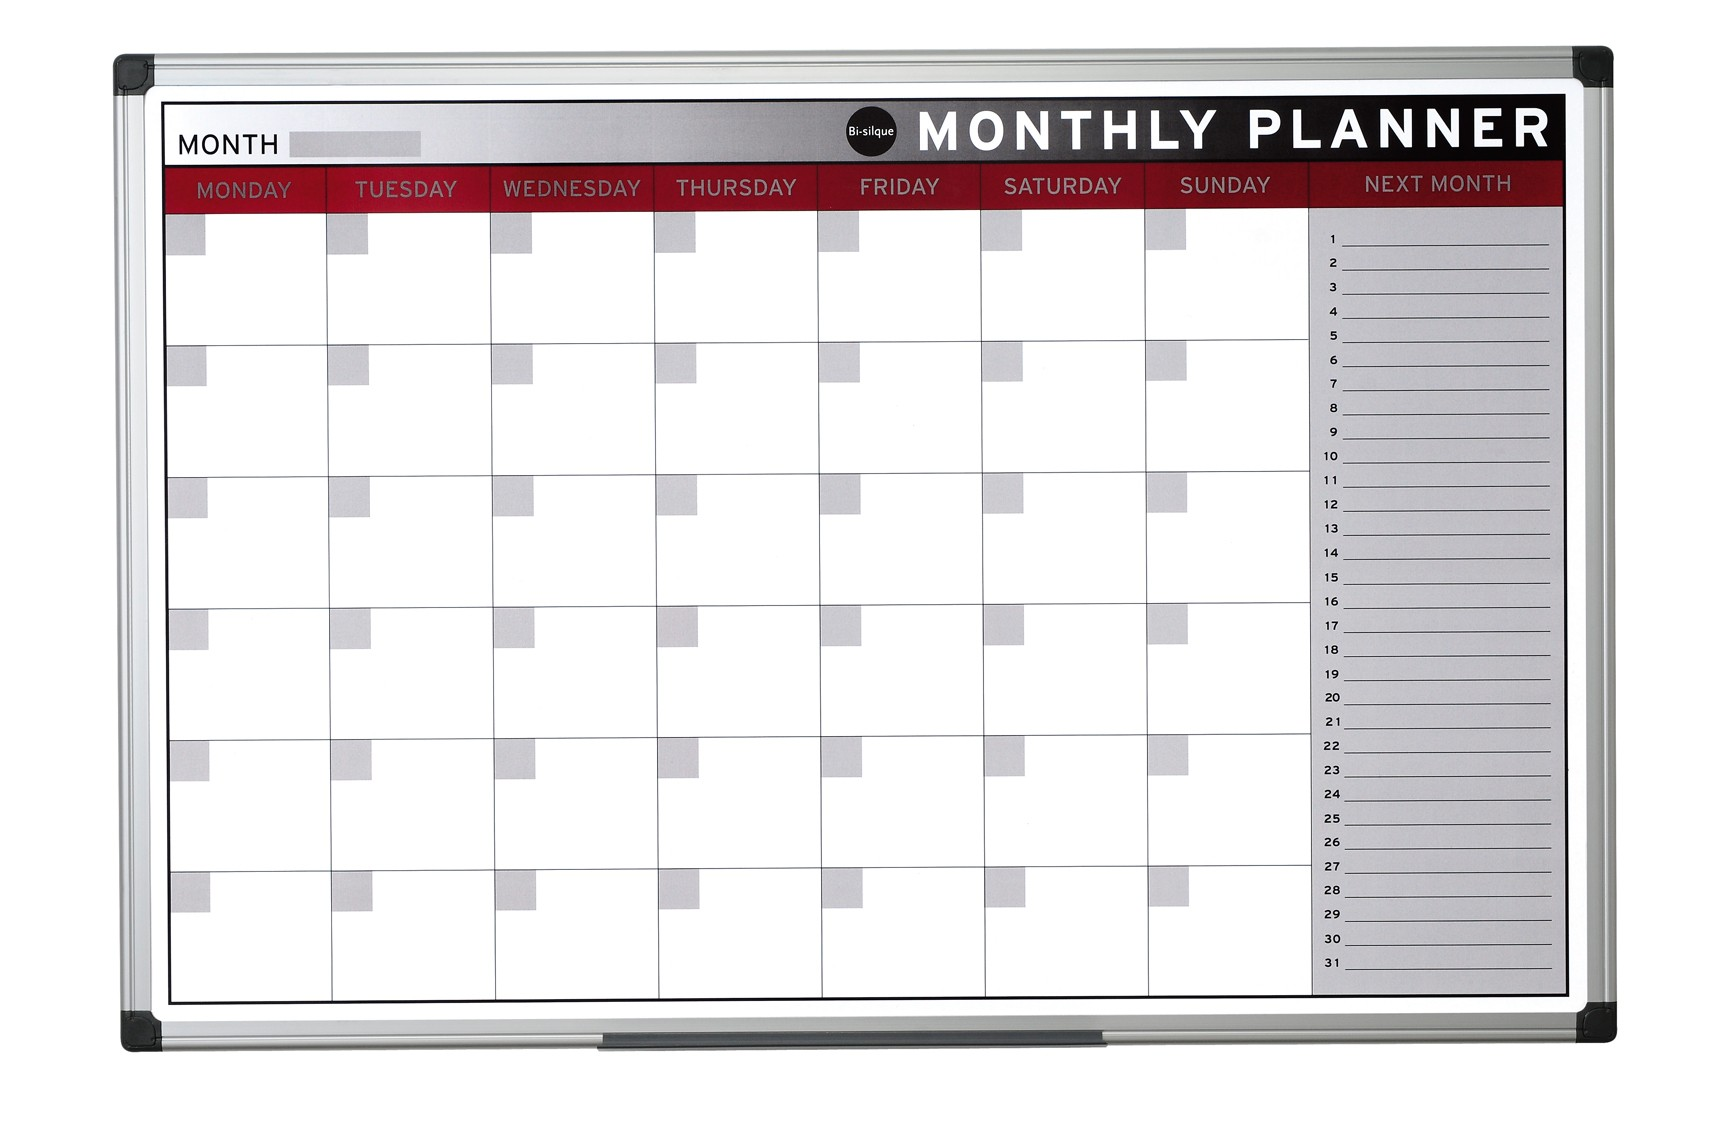 Bi office magnetic month planner 90cm x 60cm for Office planner